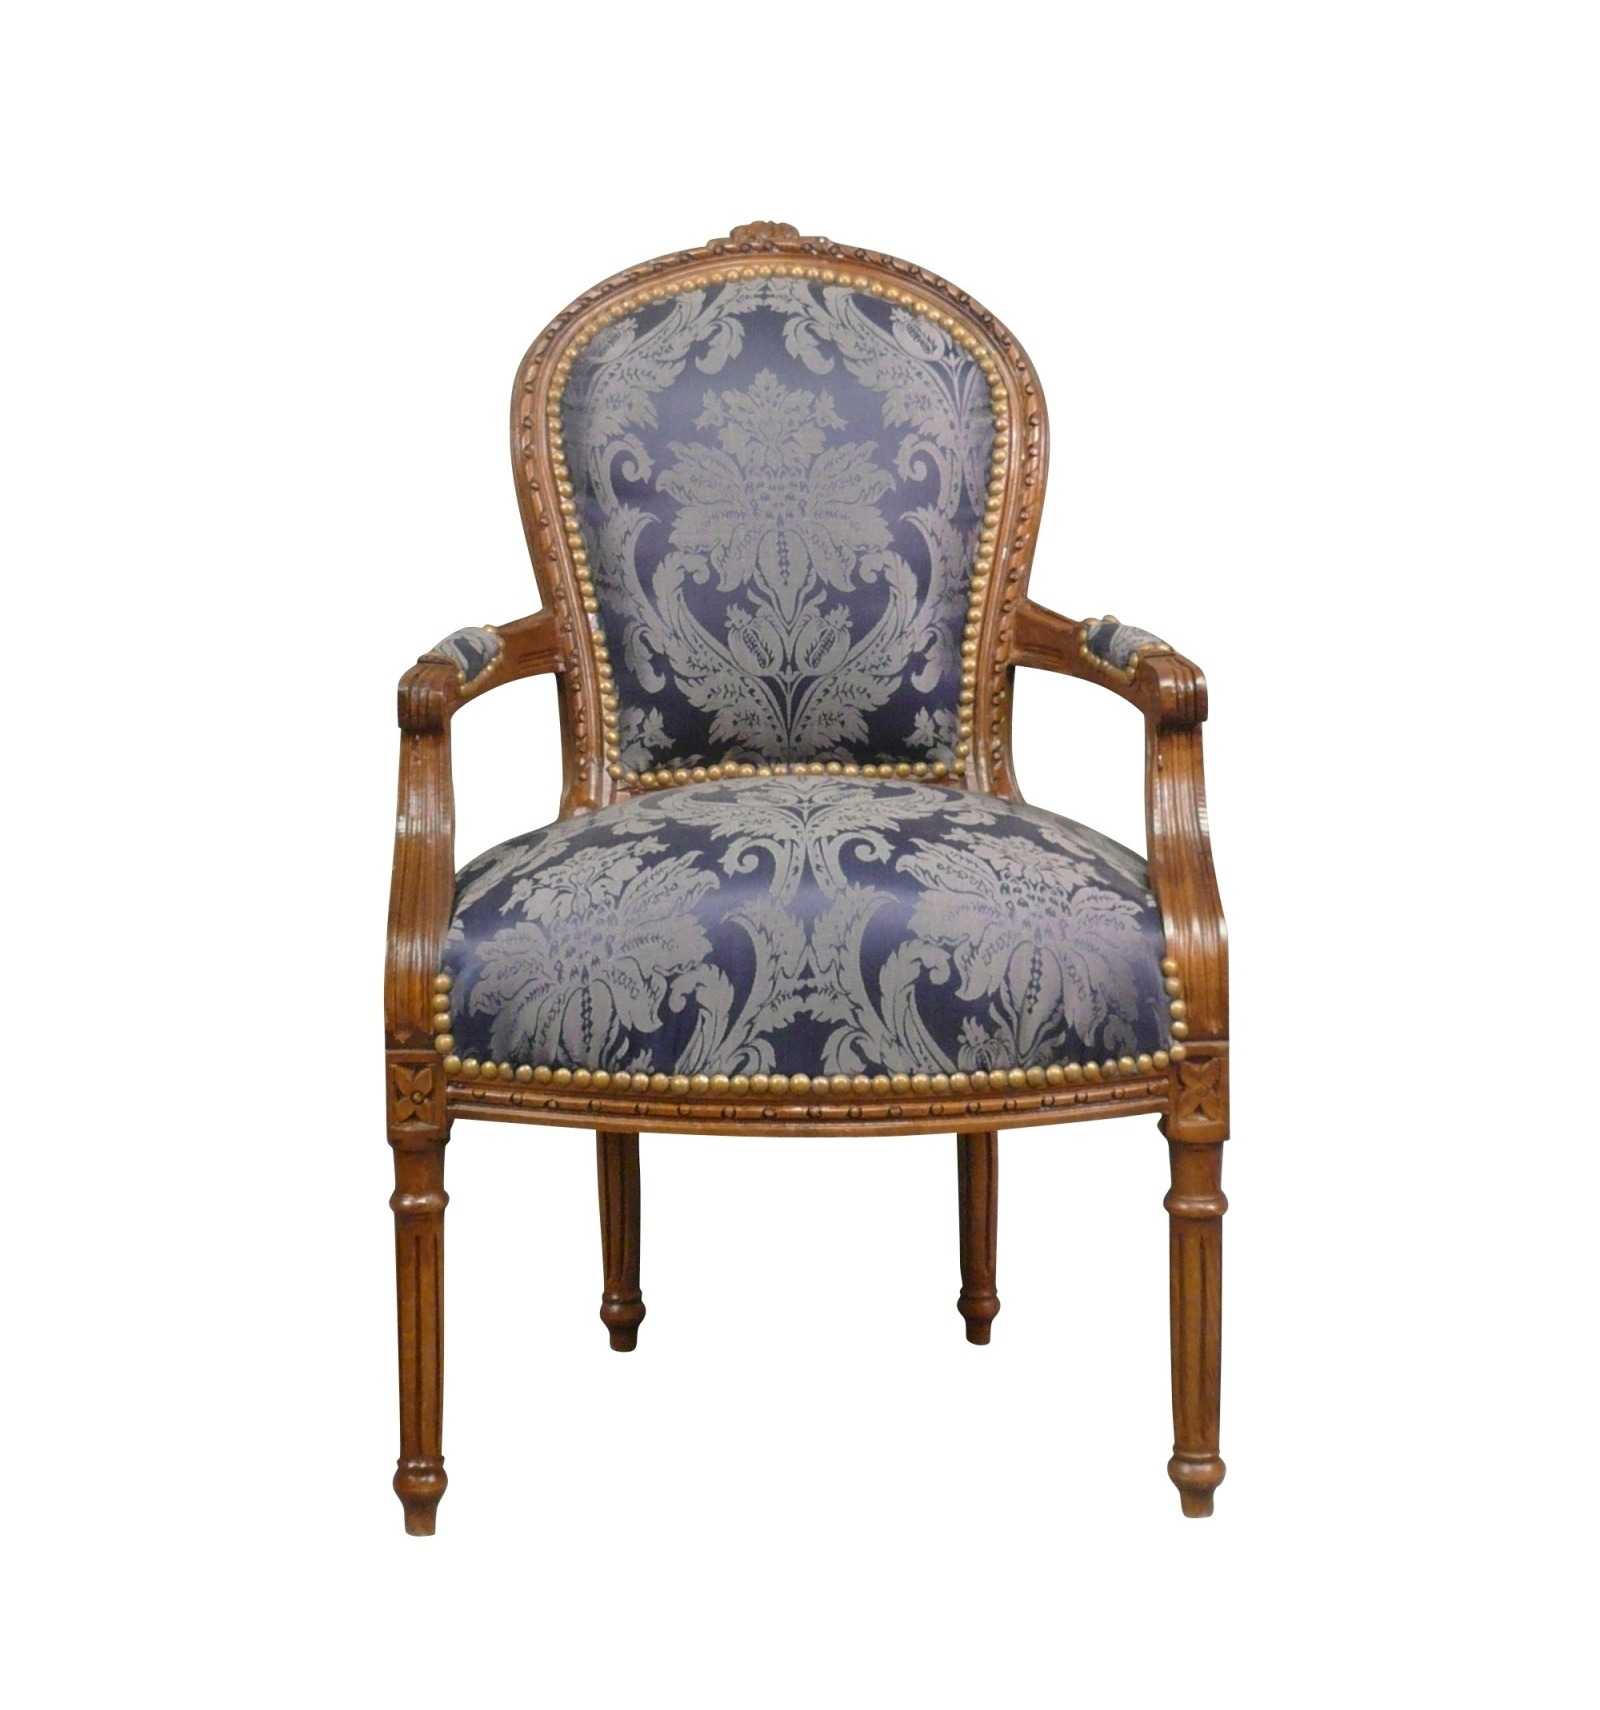 Fauteuil Hout Stoel Louis Xvi Blauw Massief Hout